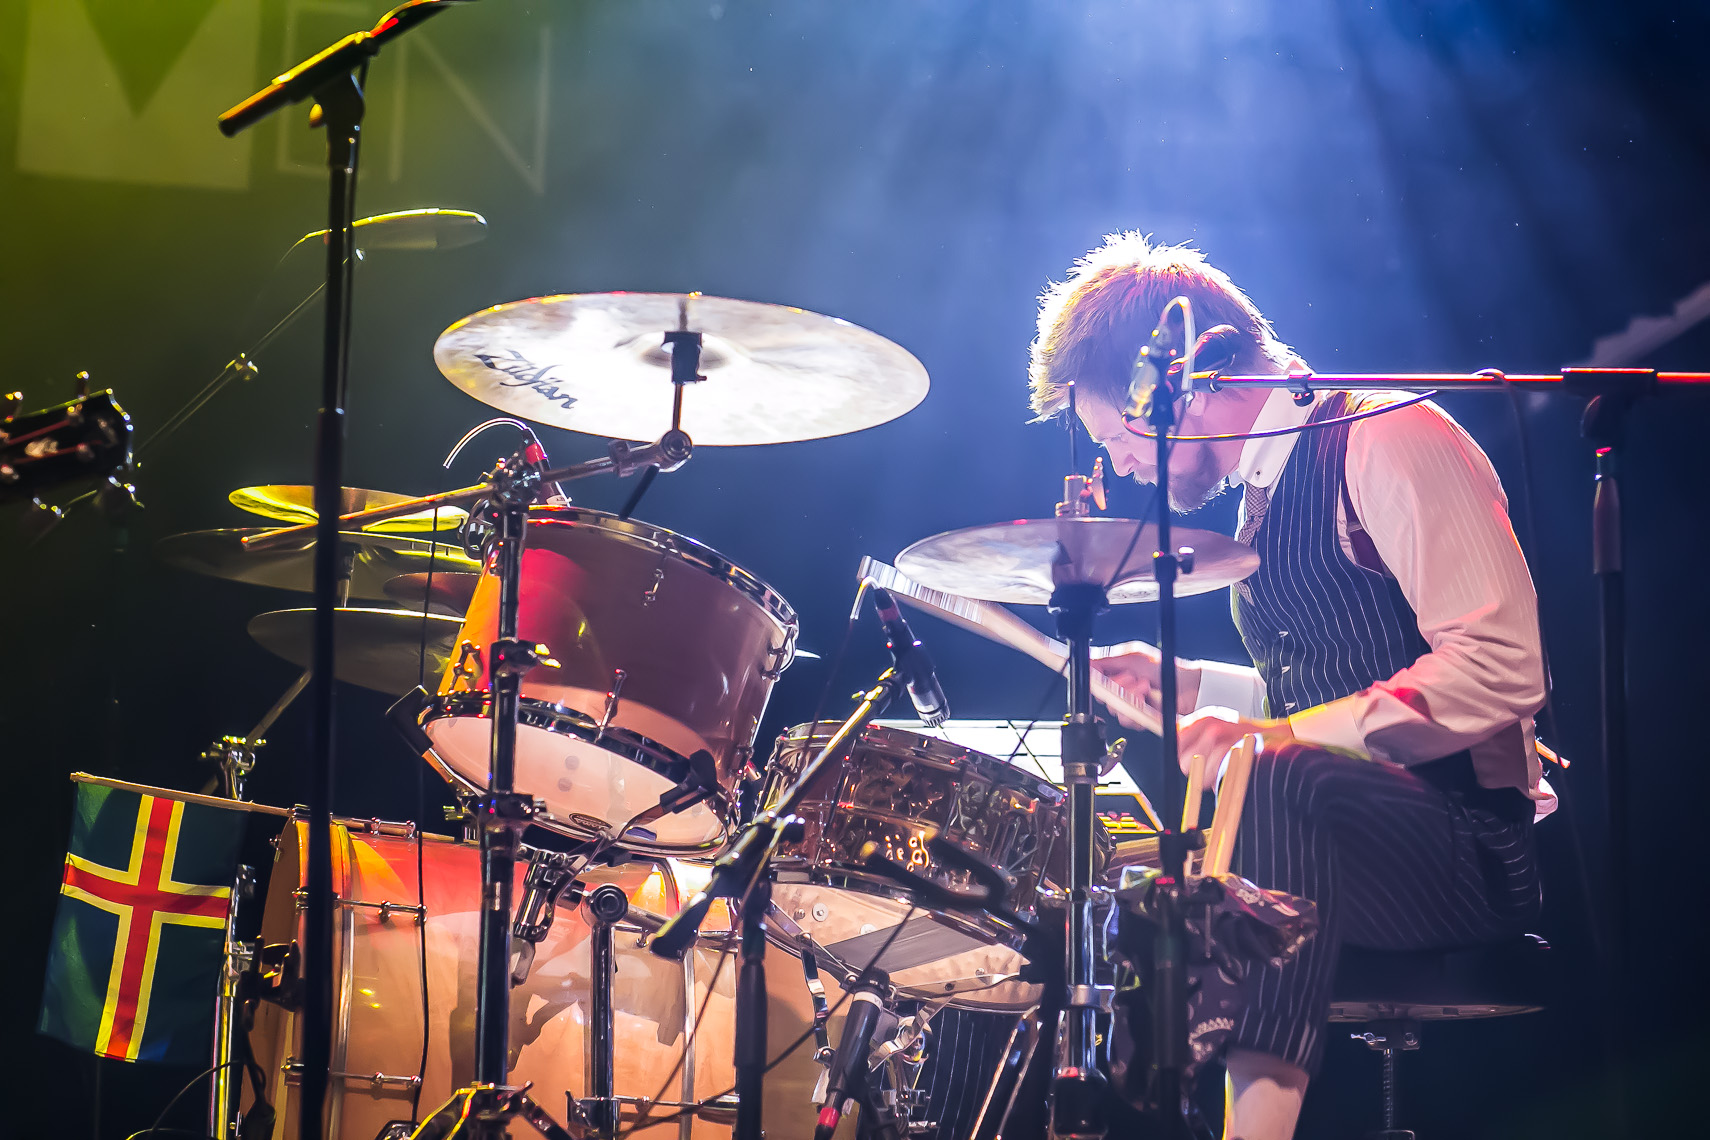 Drummer Arnar Rosenkranz from Of Monsters and Men by music photographer Deborah Lowery